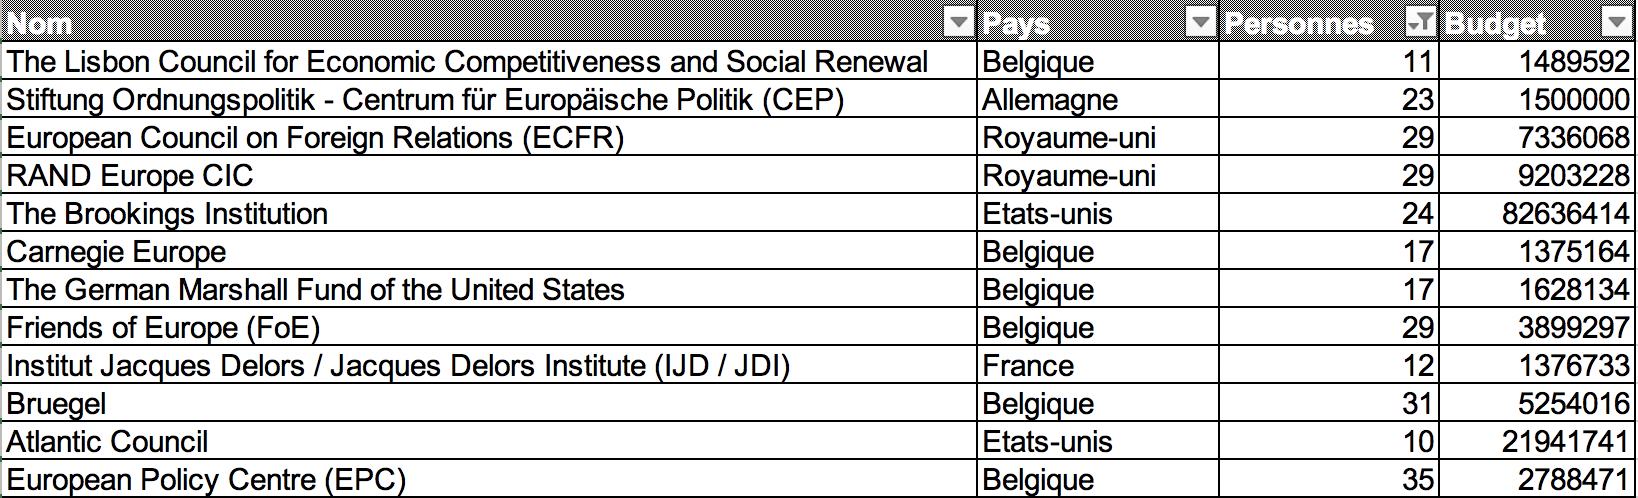 classement_think_tank_europe_registre_transparence_UE